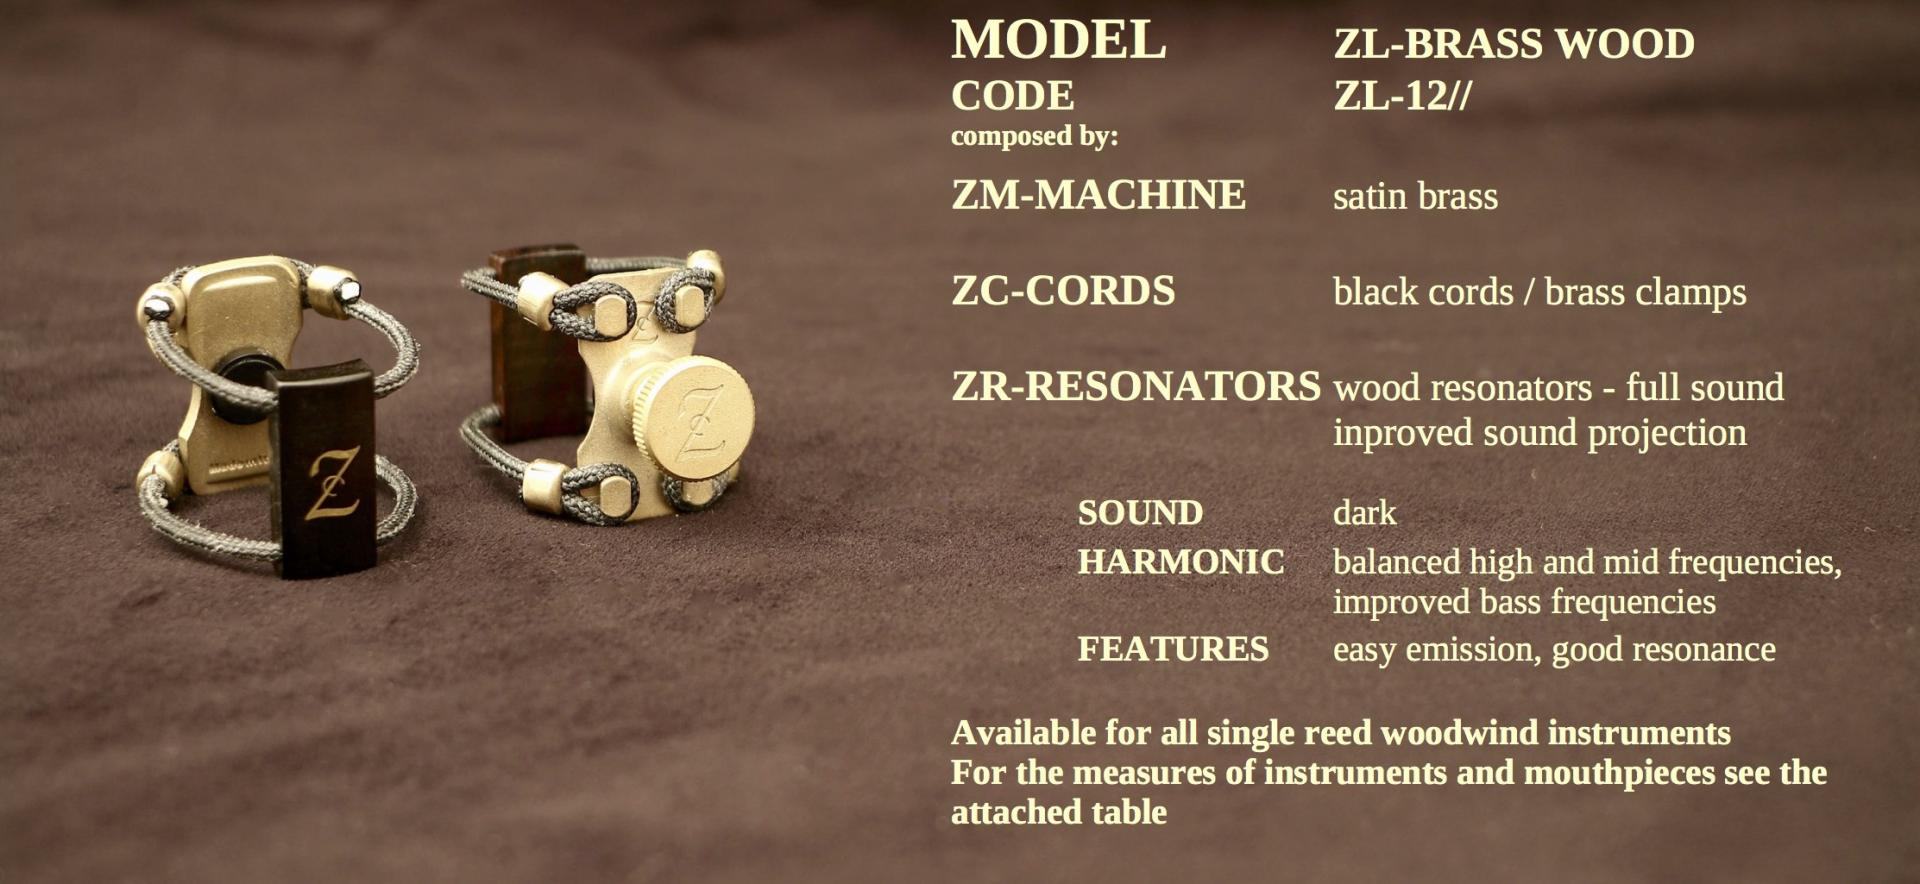 ZAC LIGATURE MODEL: ZL-BRASS WOOD